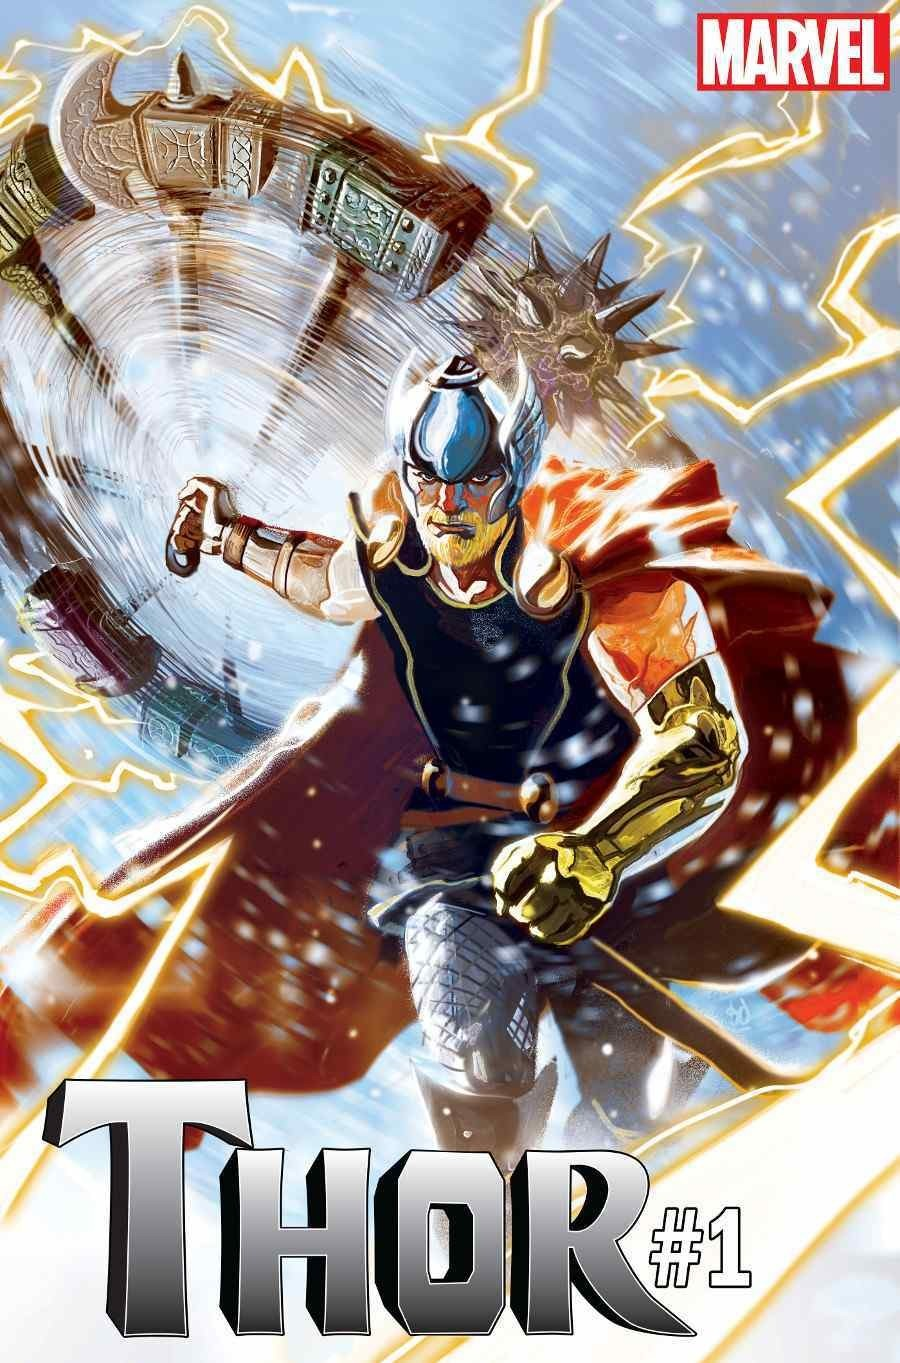 New Thor #1 Cover by Mike Del Mundo